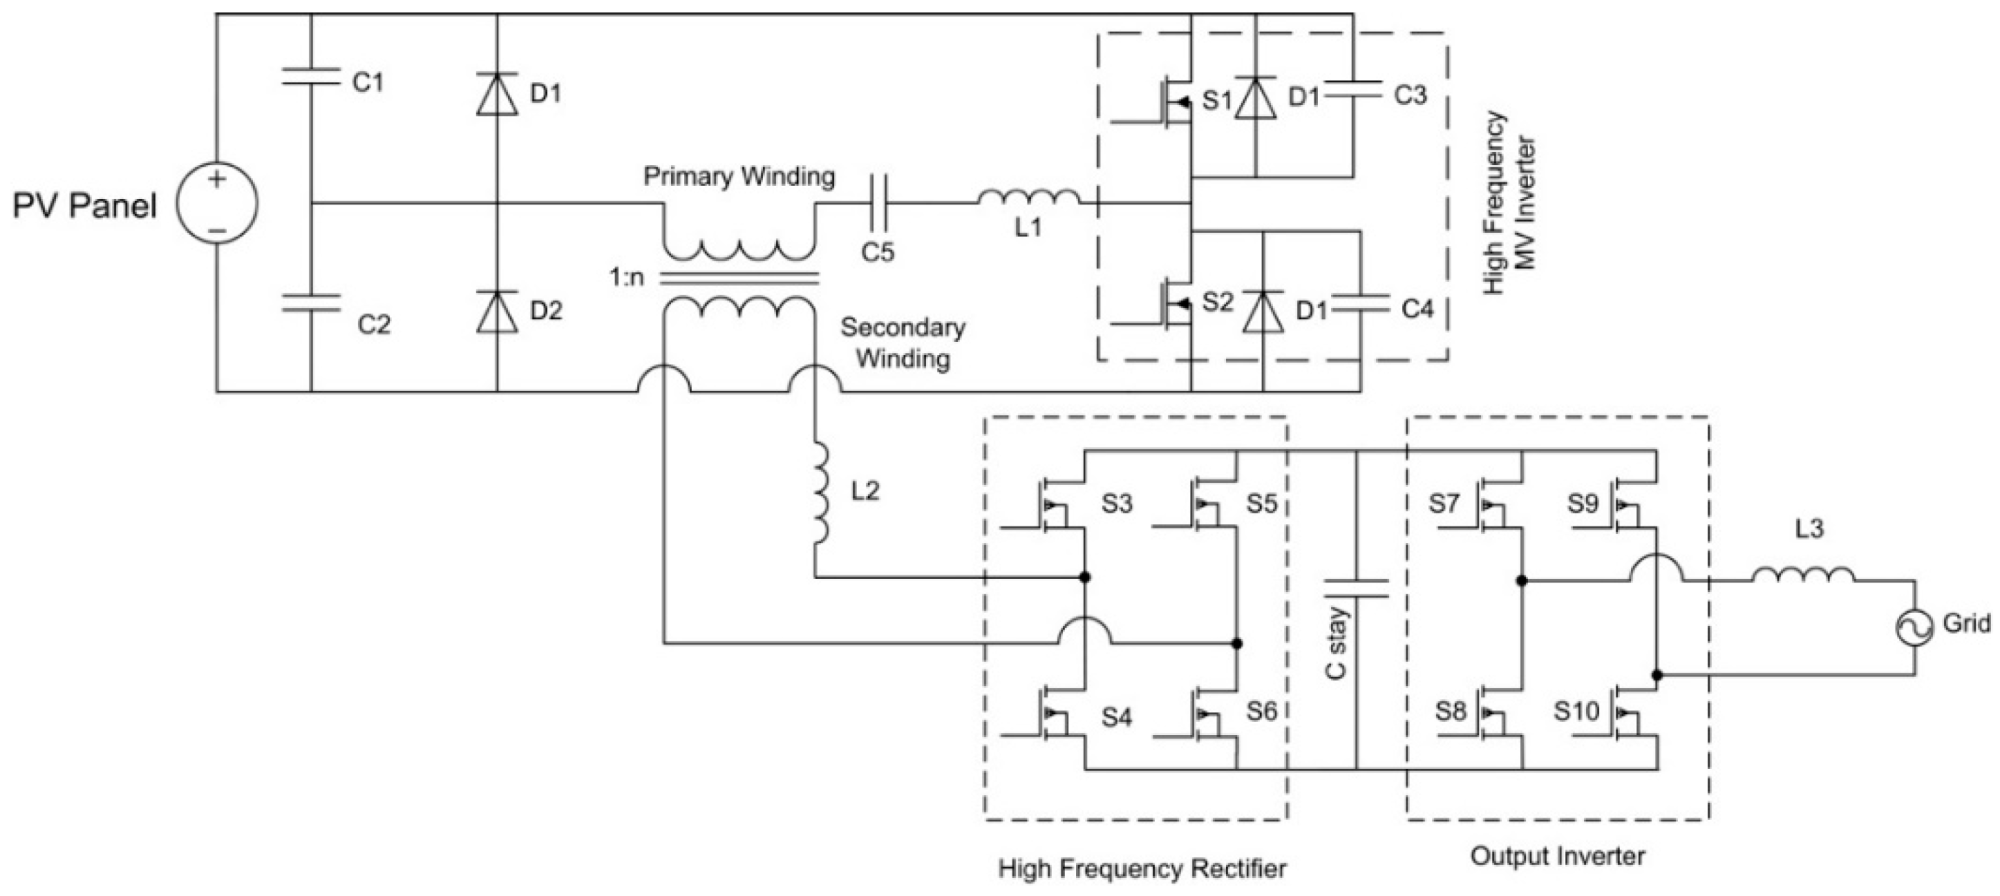 hight resolution of electronics 07 00142 g004